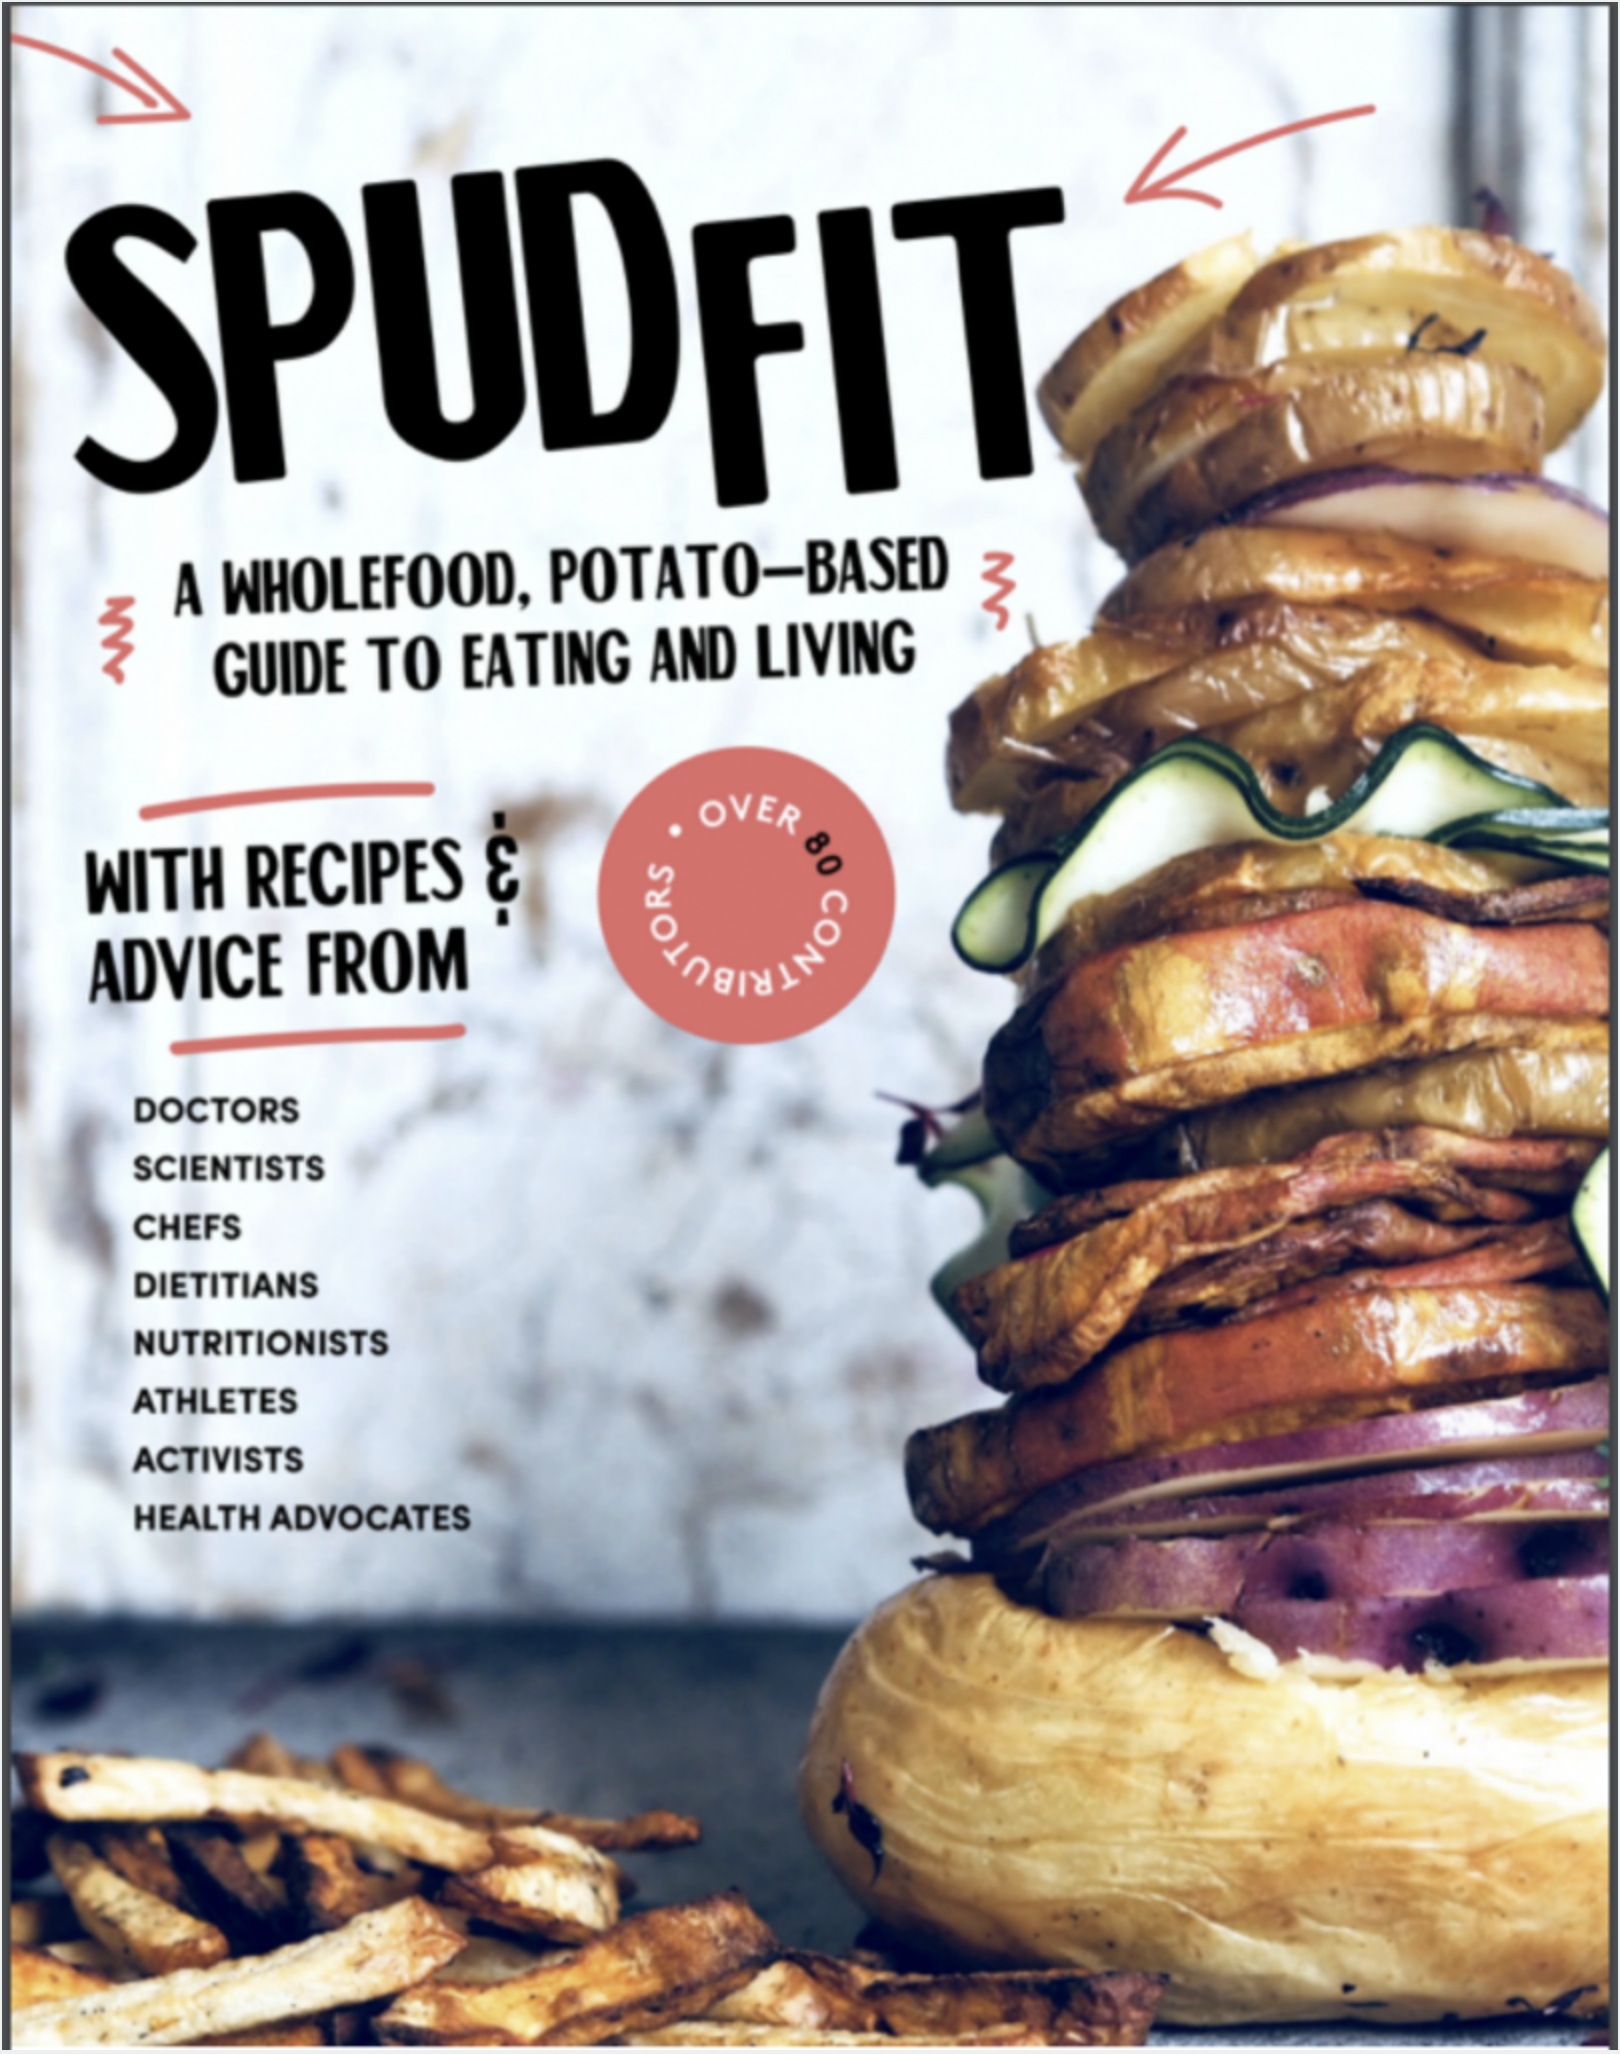 spudcover.png